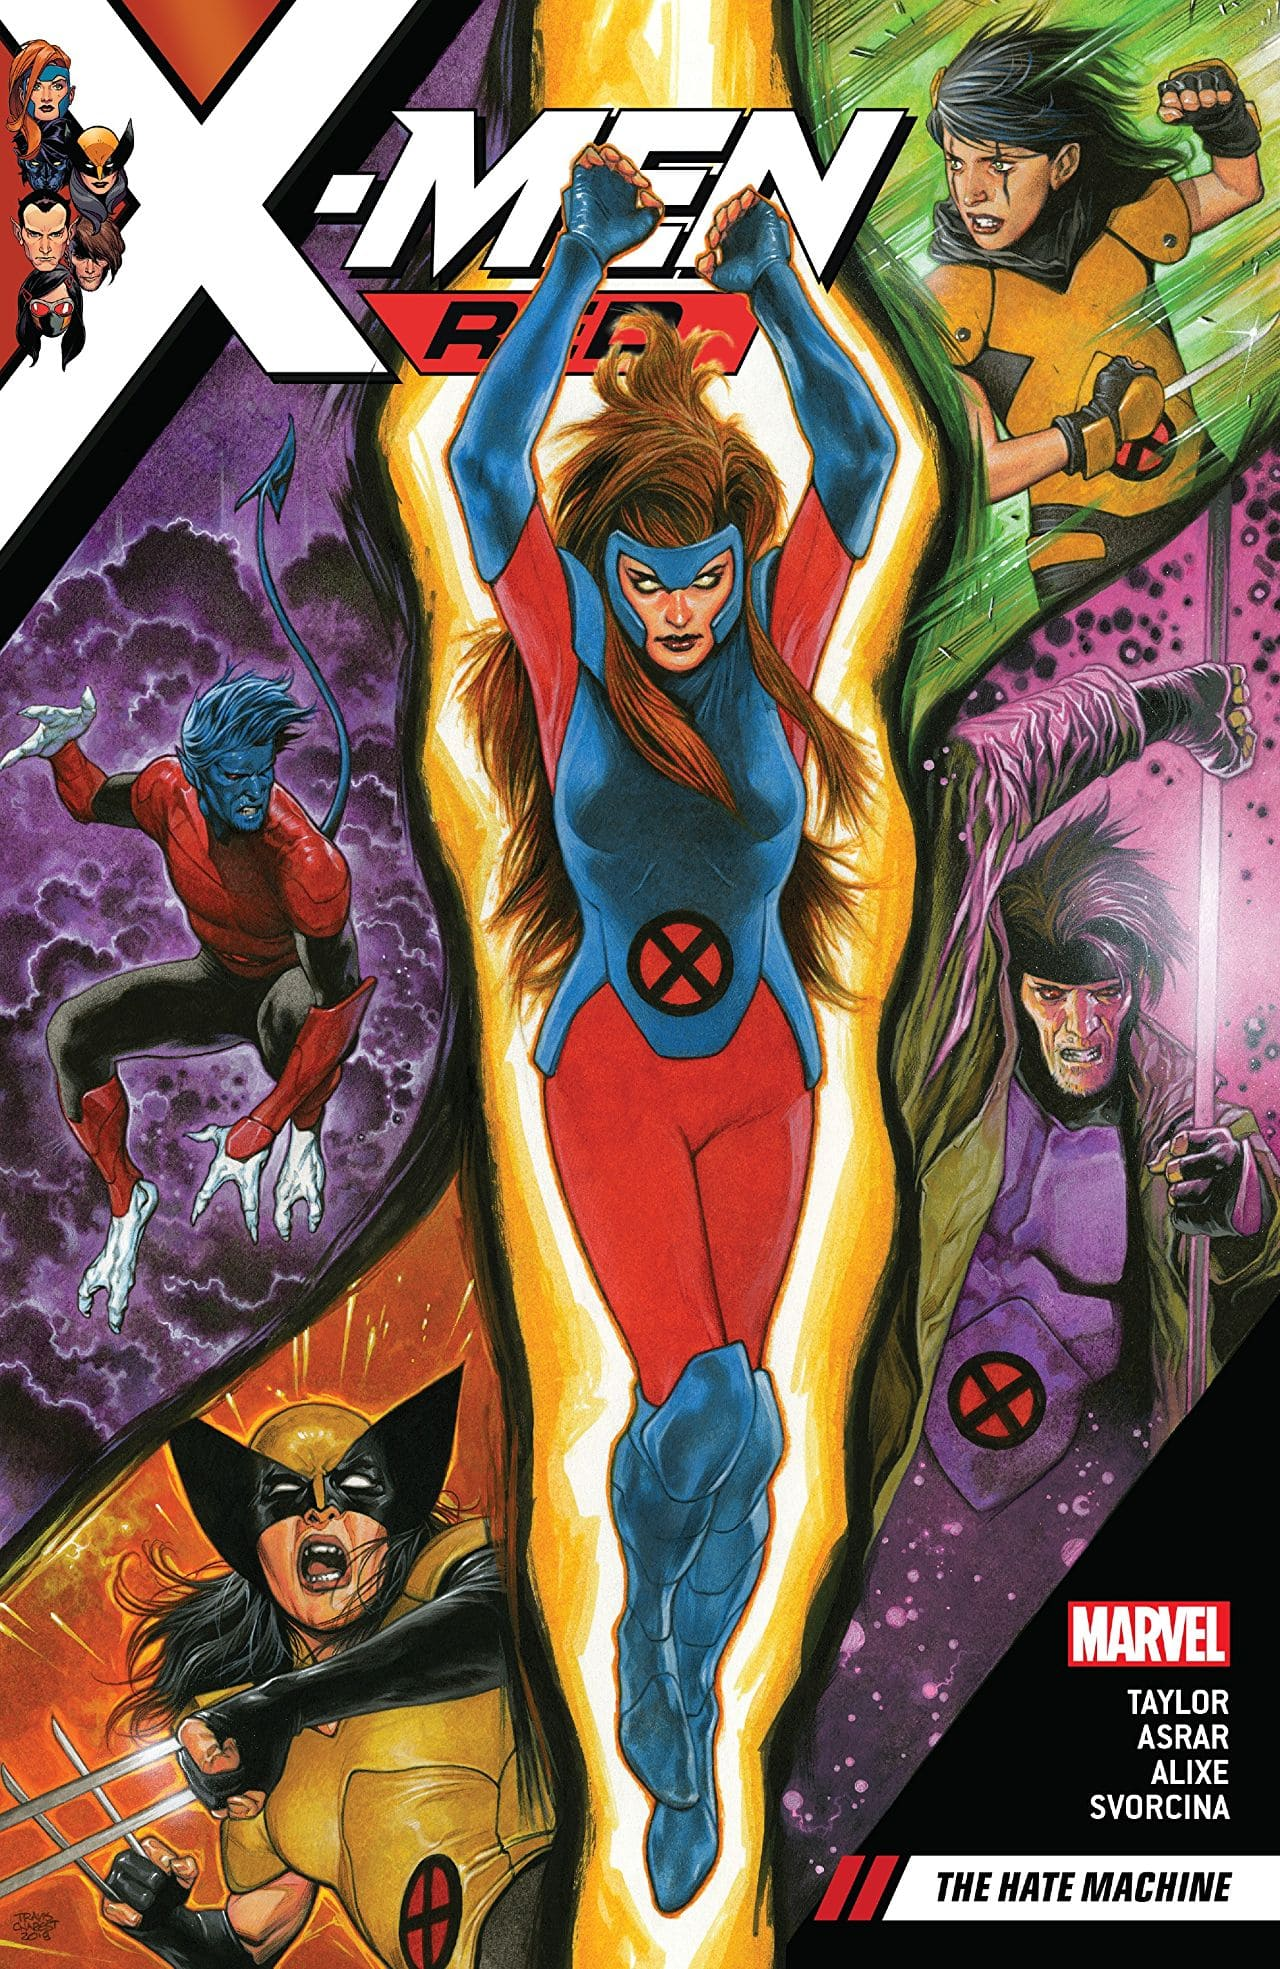 'X-Men Red Vol. 1: The Hate Machine' review: Well-intentioned but not quite there